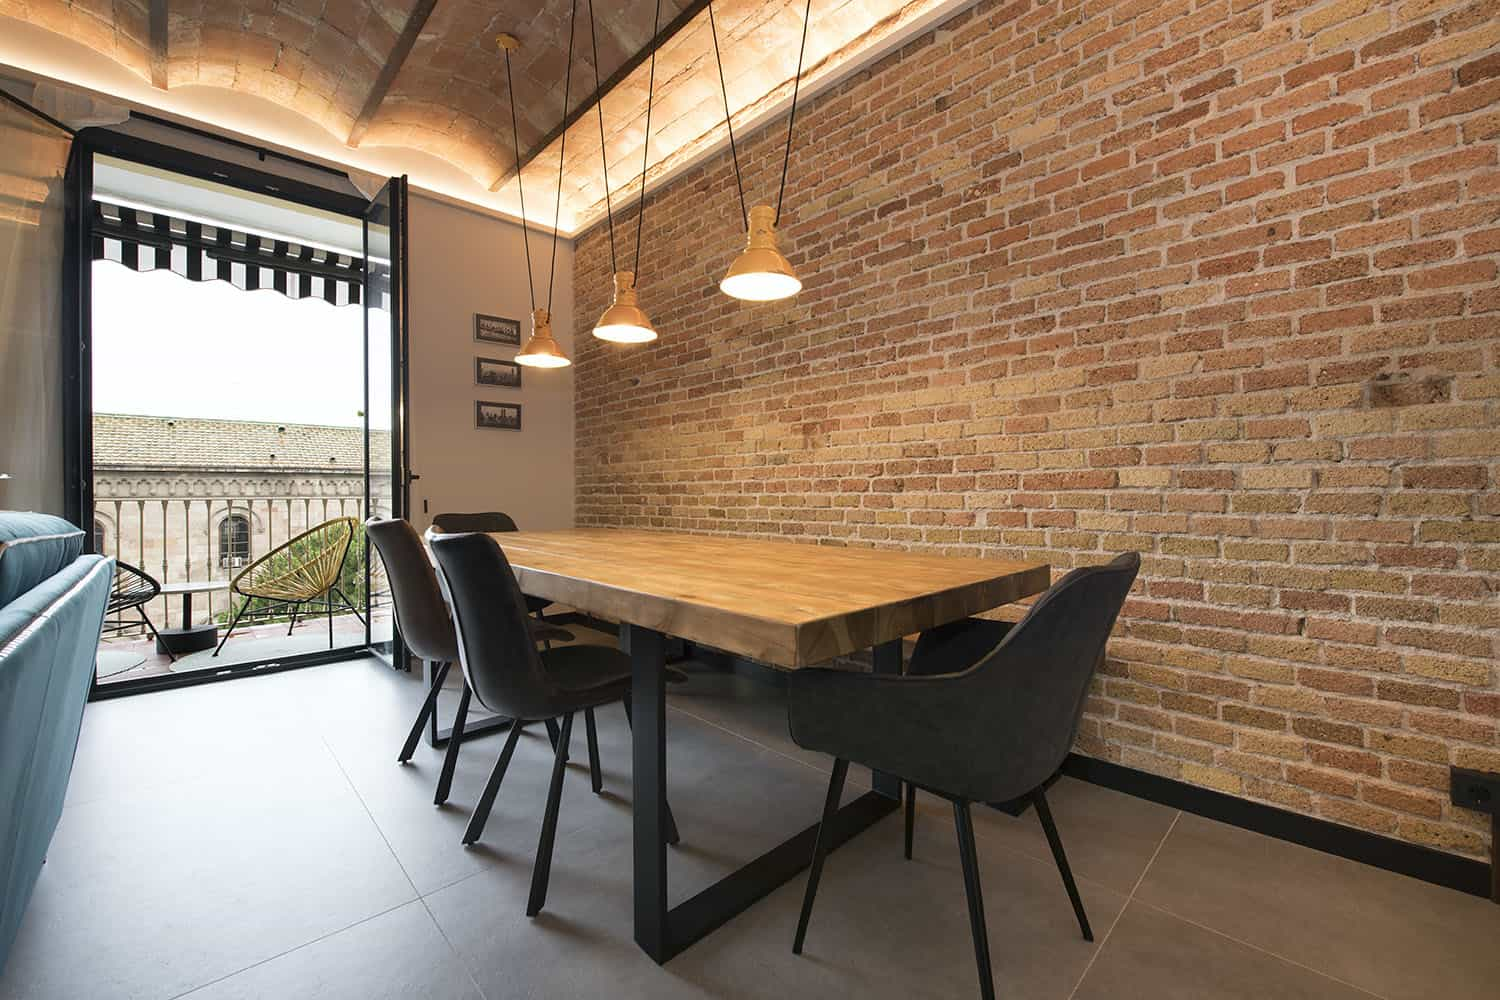 The dining space is industrial, with a brick wall, a wooden table and black chairs plus pendant lamps